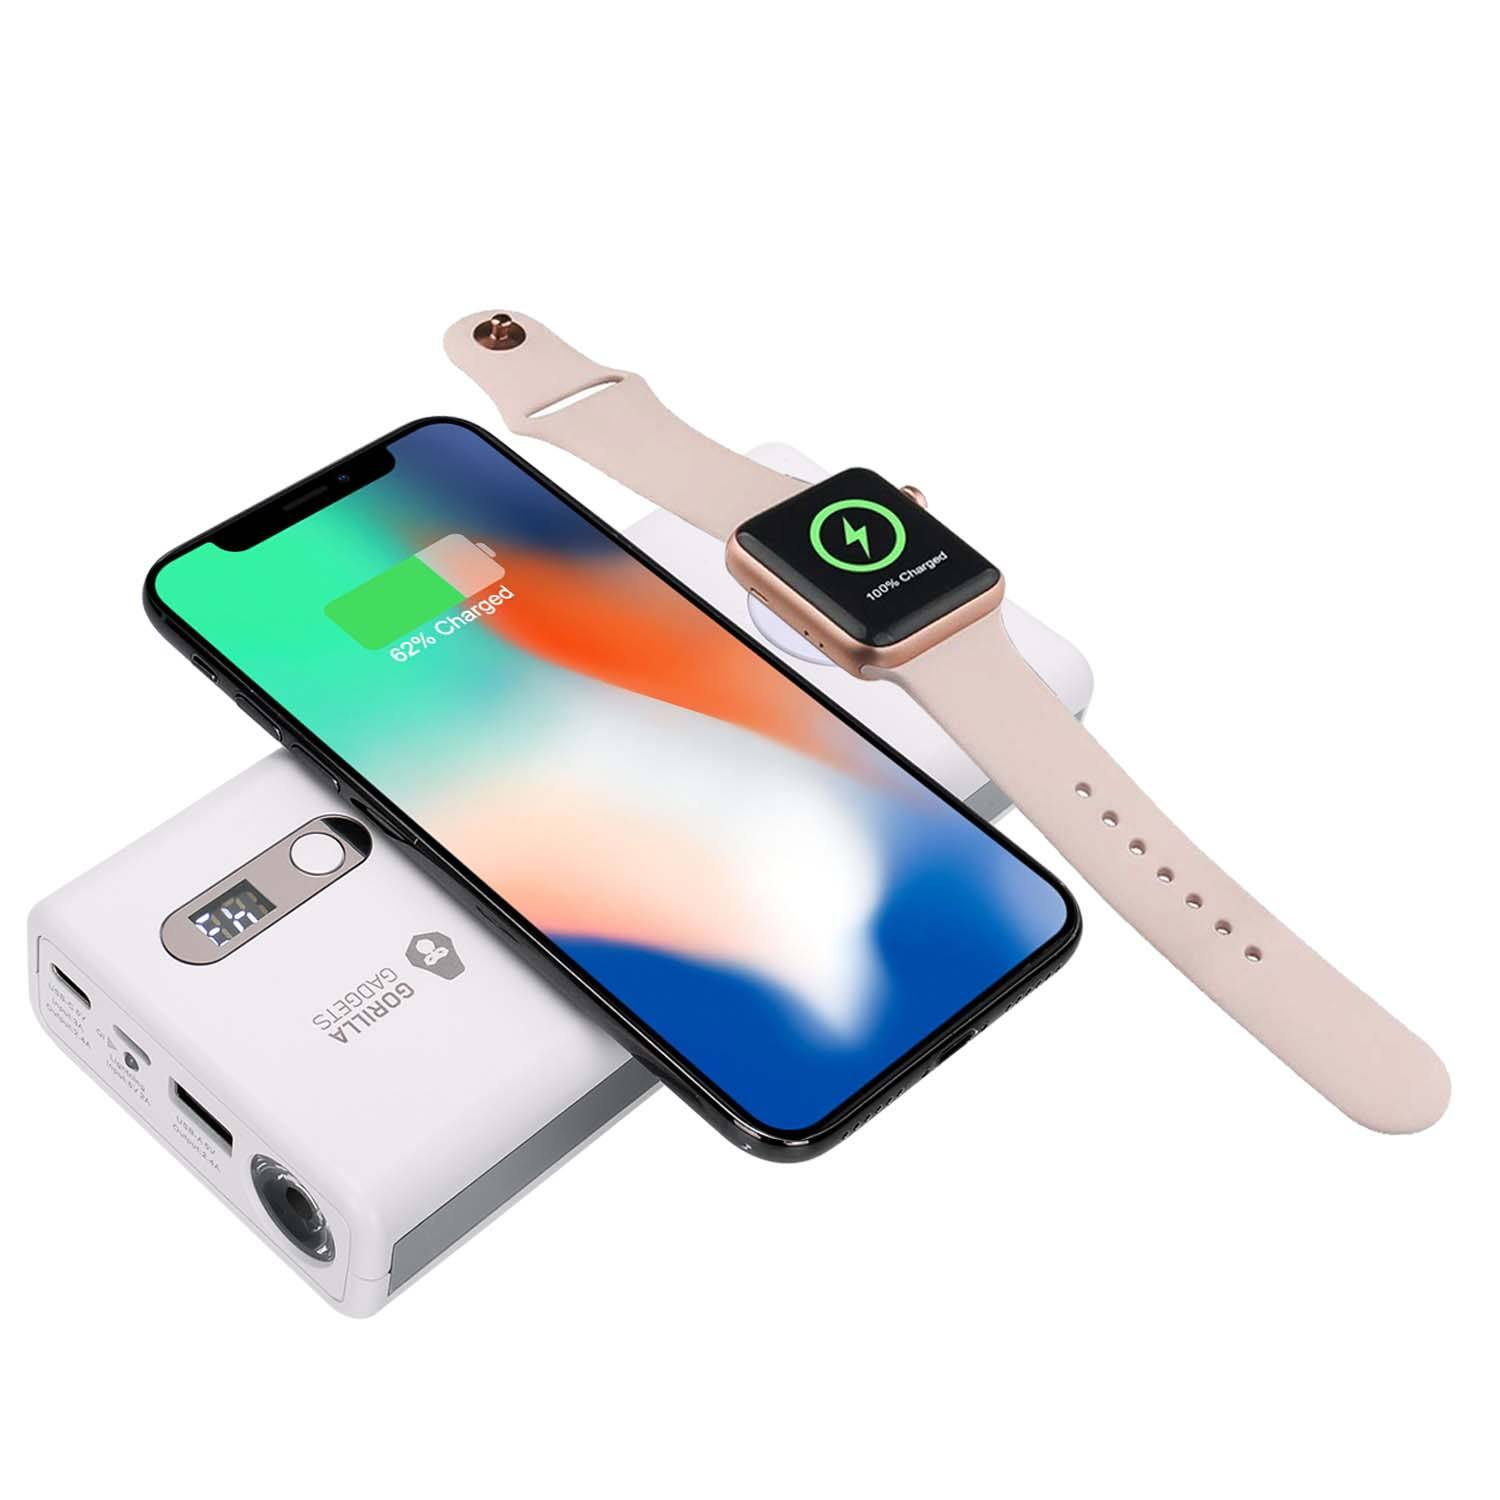 2-in-1 Qi Wireless Power Bank and Apple Watch Charger (20000mAh)